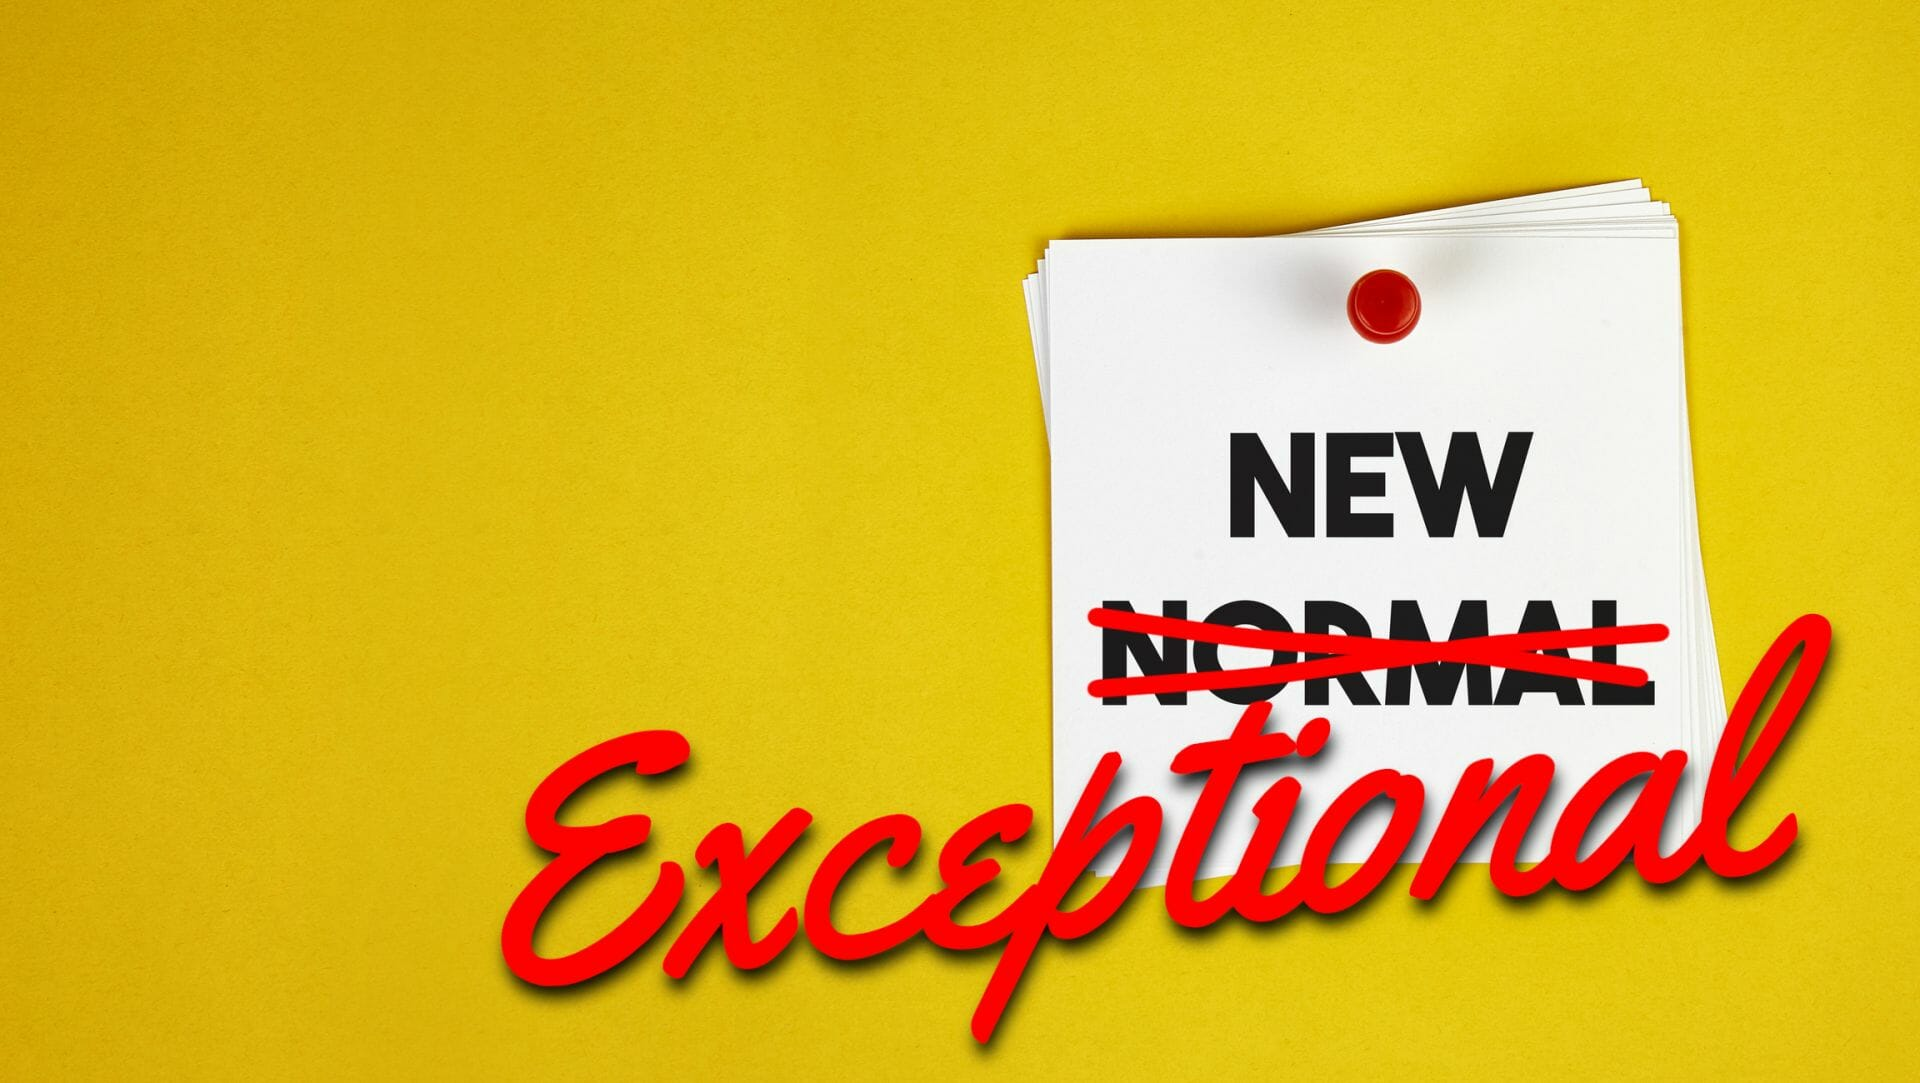 new exceptional